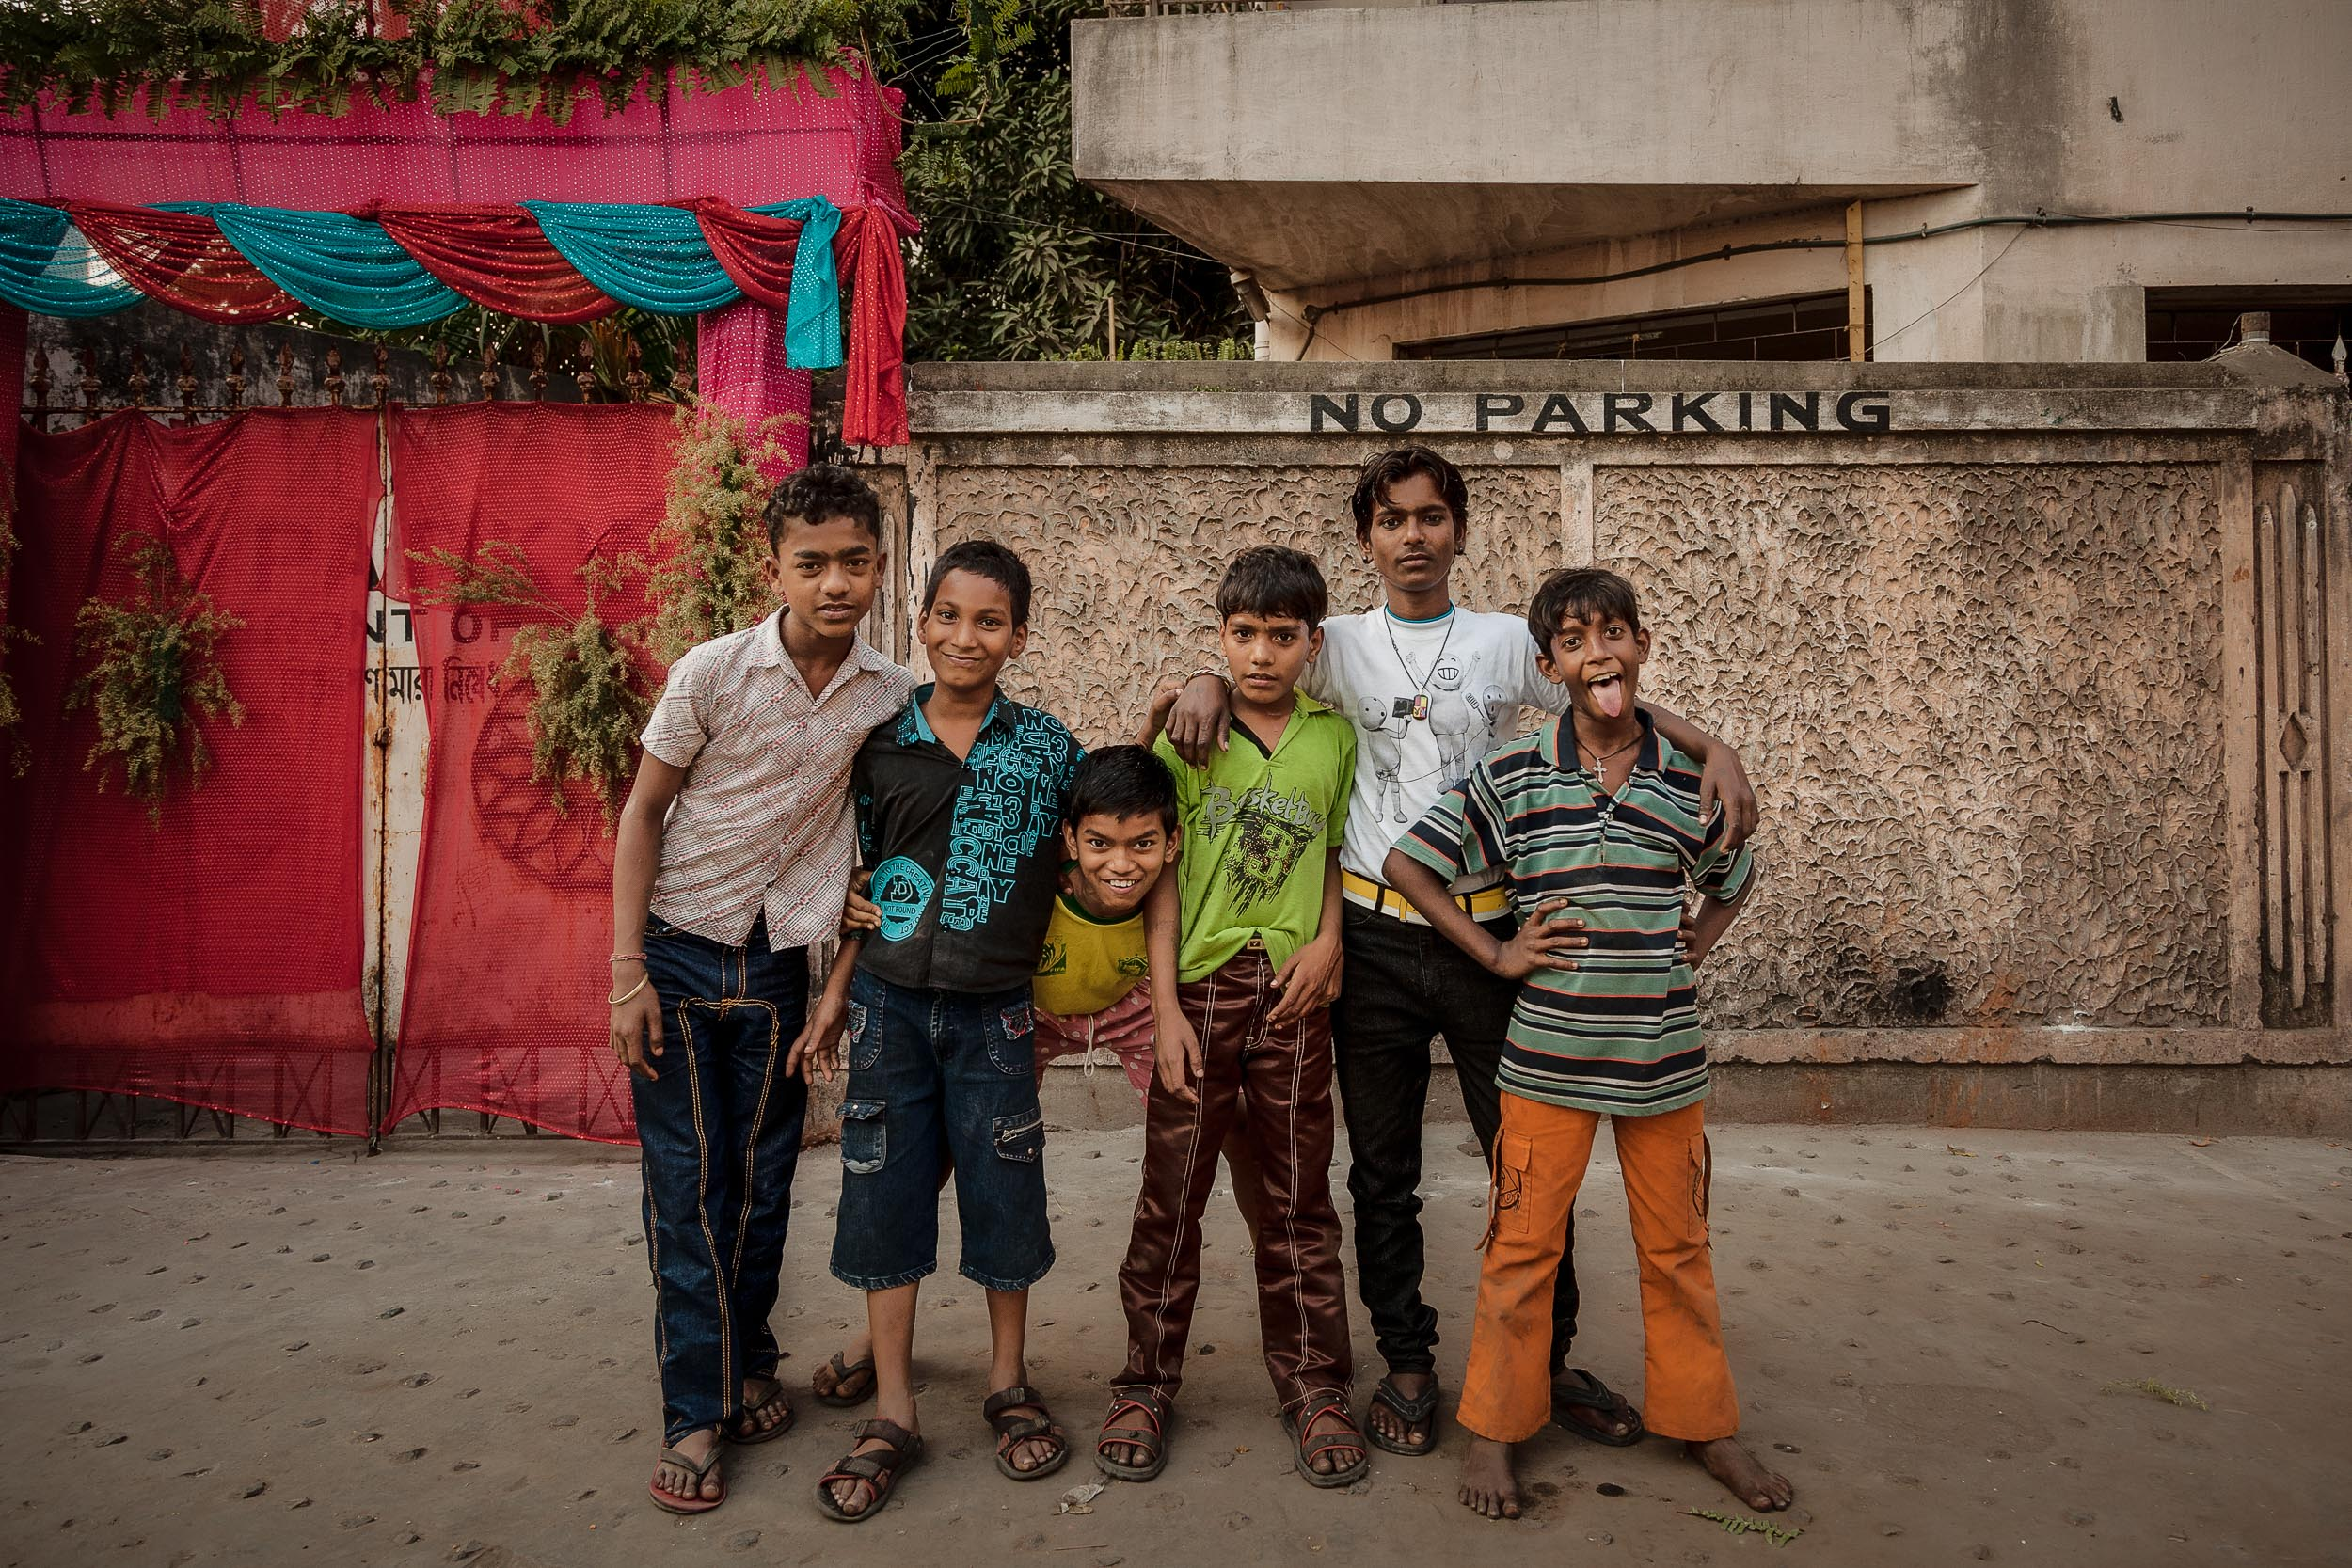 A group of    young lads    pose for a photo in the streets of    Kolkata, India   .